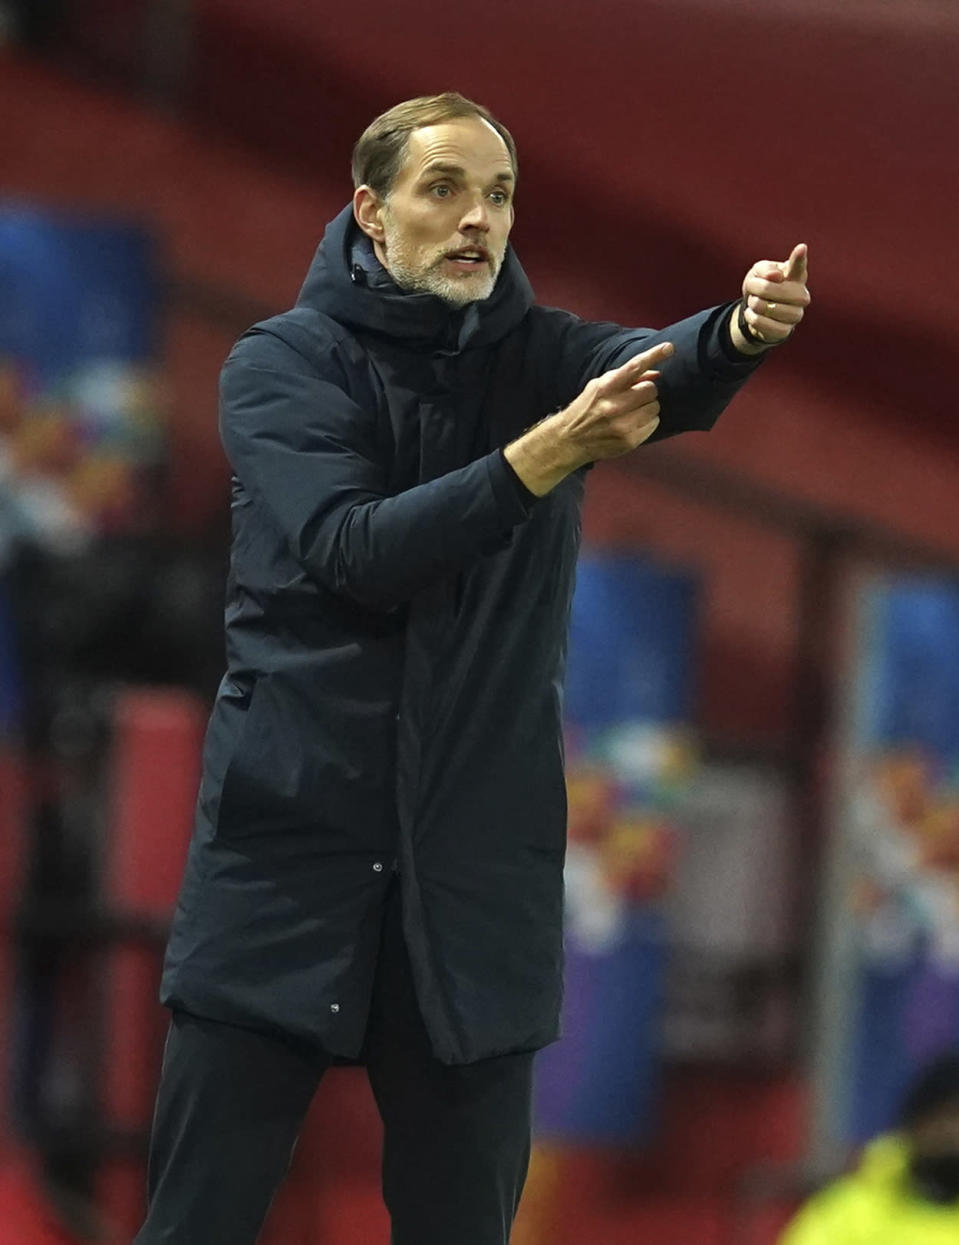 FILE - In this file photo dated Wednesday, Dec. 2, 2020, PSG's head coach Thomas Tuchel signals during a Group H Champions League soccer match against Manchester United at the Old Trafford stadium in Manchester, England. Thomas Tuchel is confirmed as the new Chelsea soccer team manager, Tuesday Jan. 26, 2021. (AP Photo/Dave Thompson, FILE)